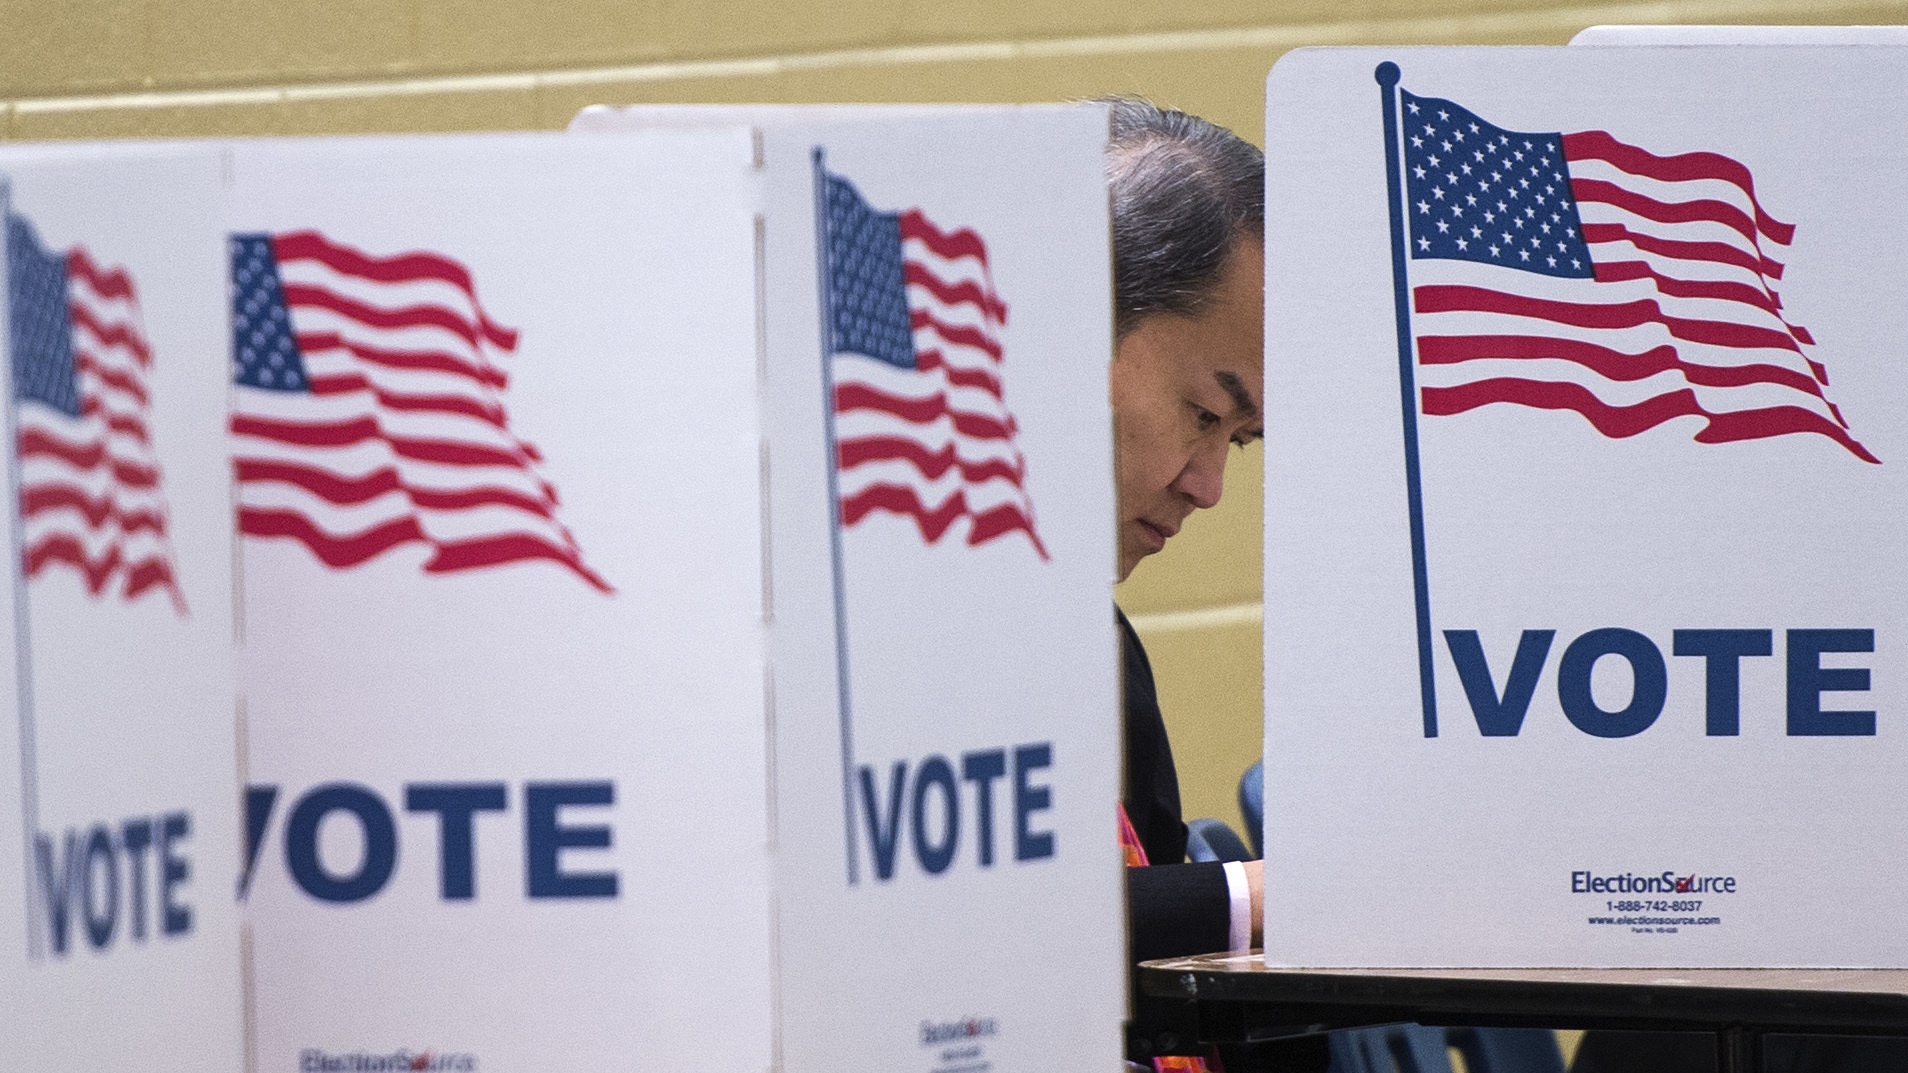 A man votes at a polling place in McLean, Va., in 2016.